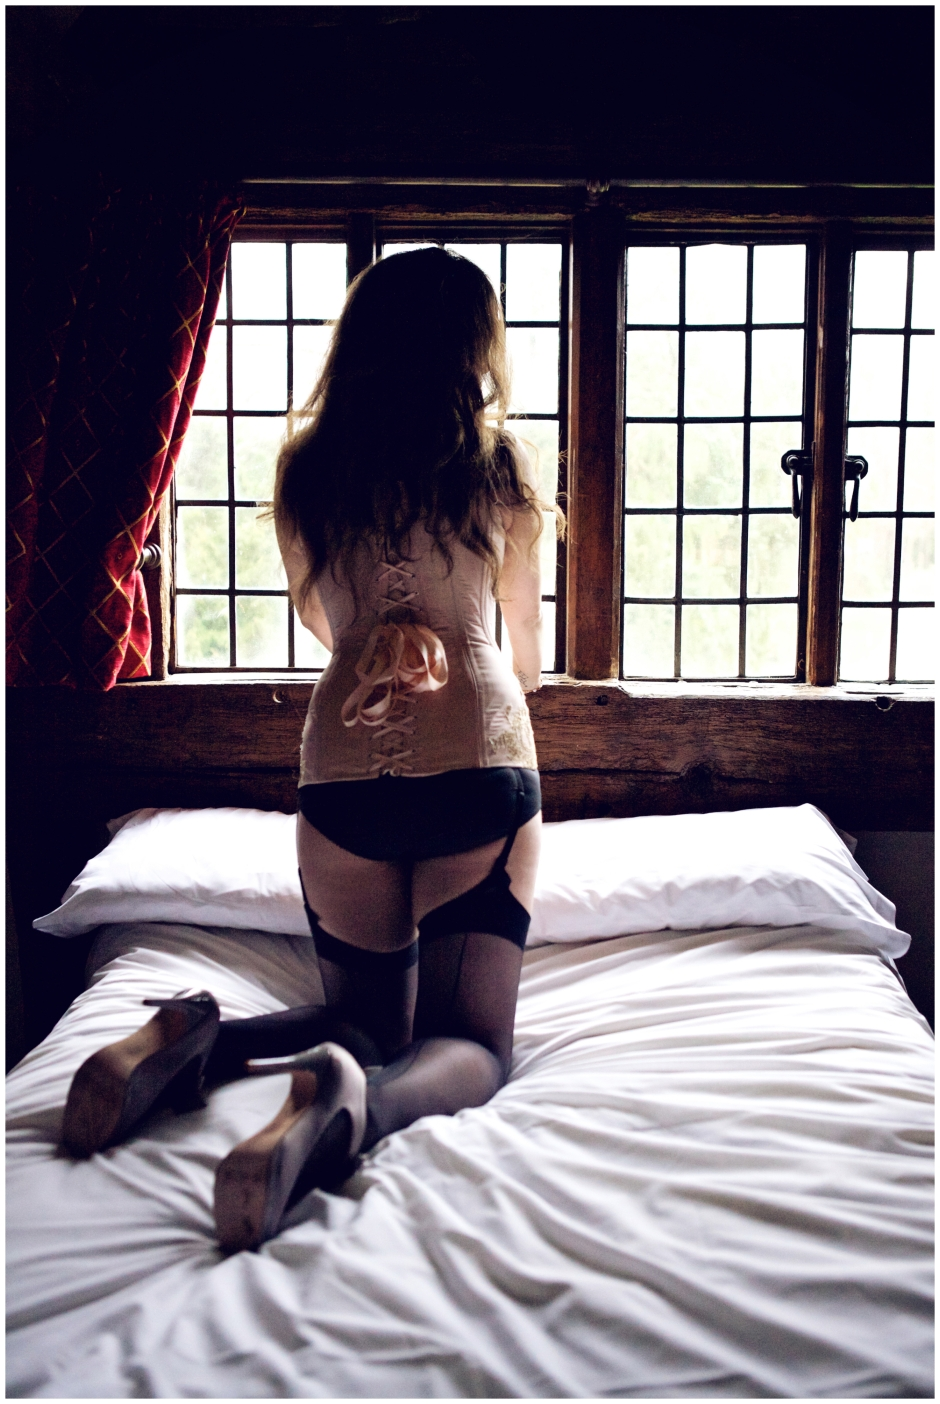 009 photography farm 2014 boudoir by Devon based photographer Elizabeth Armitage